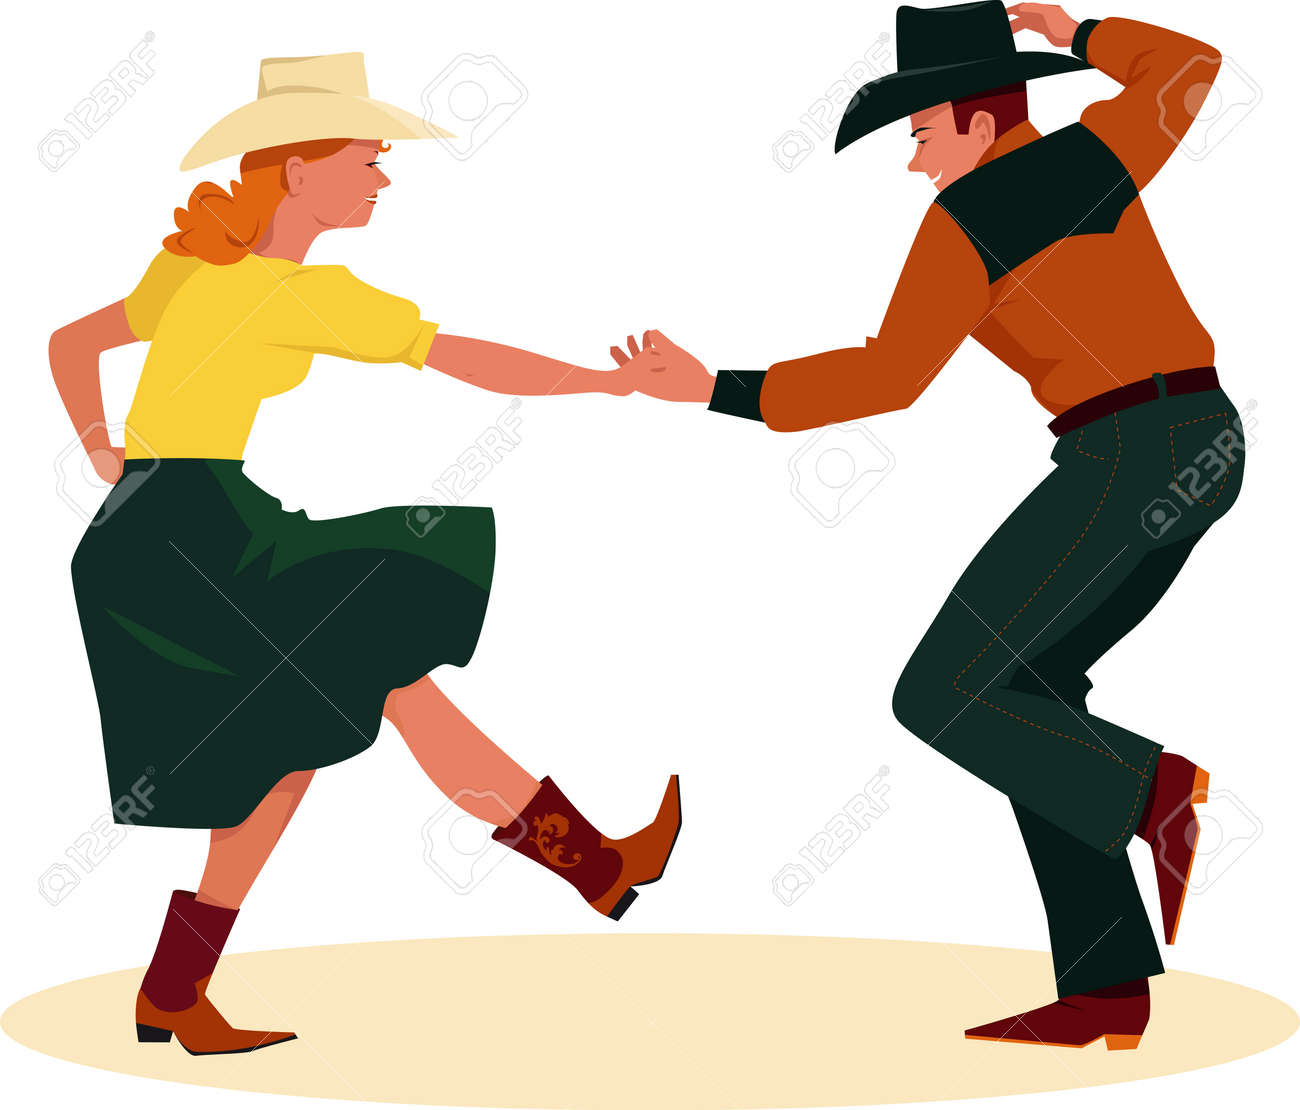 Image Danse Country couple danse country western, vue arrière, eps, 8 illustration